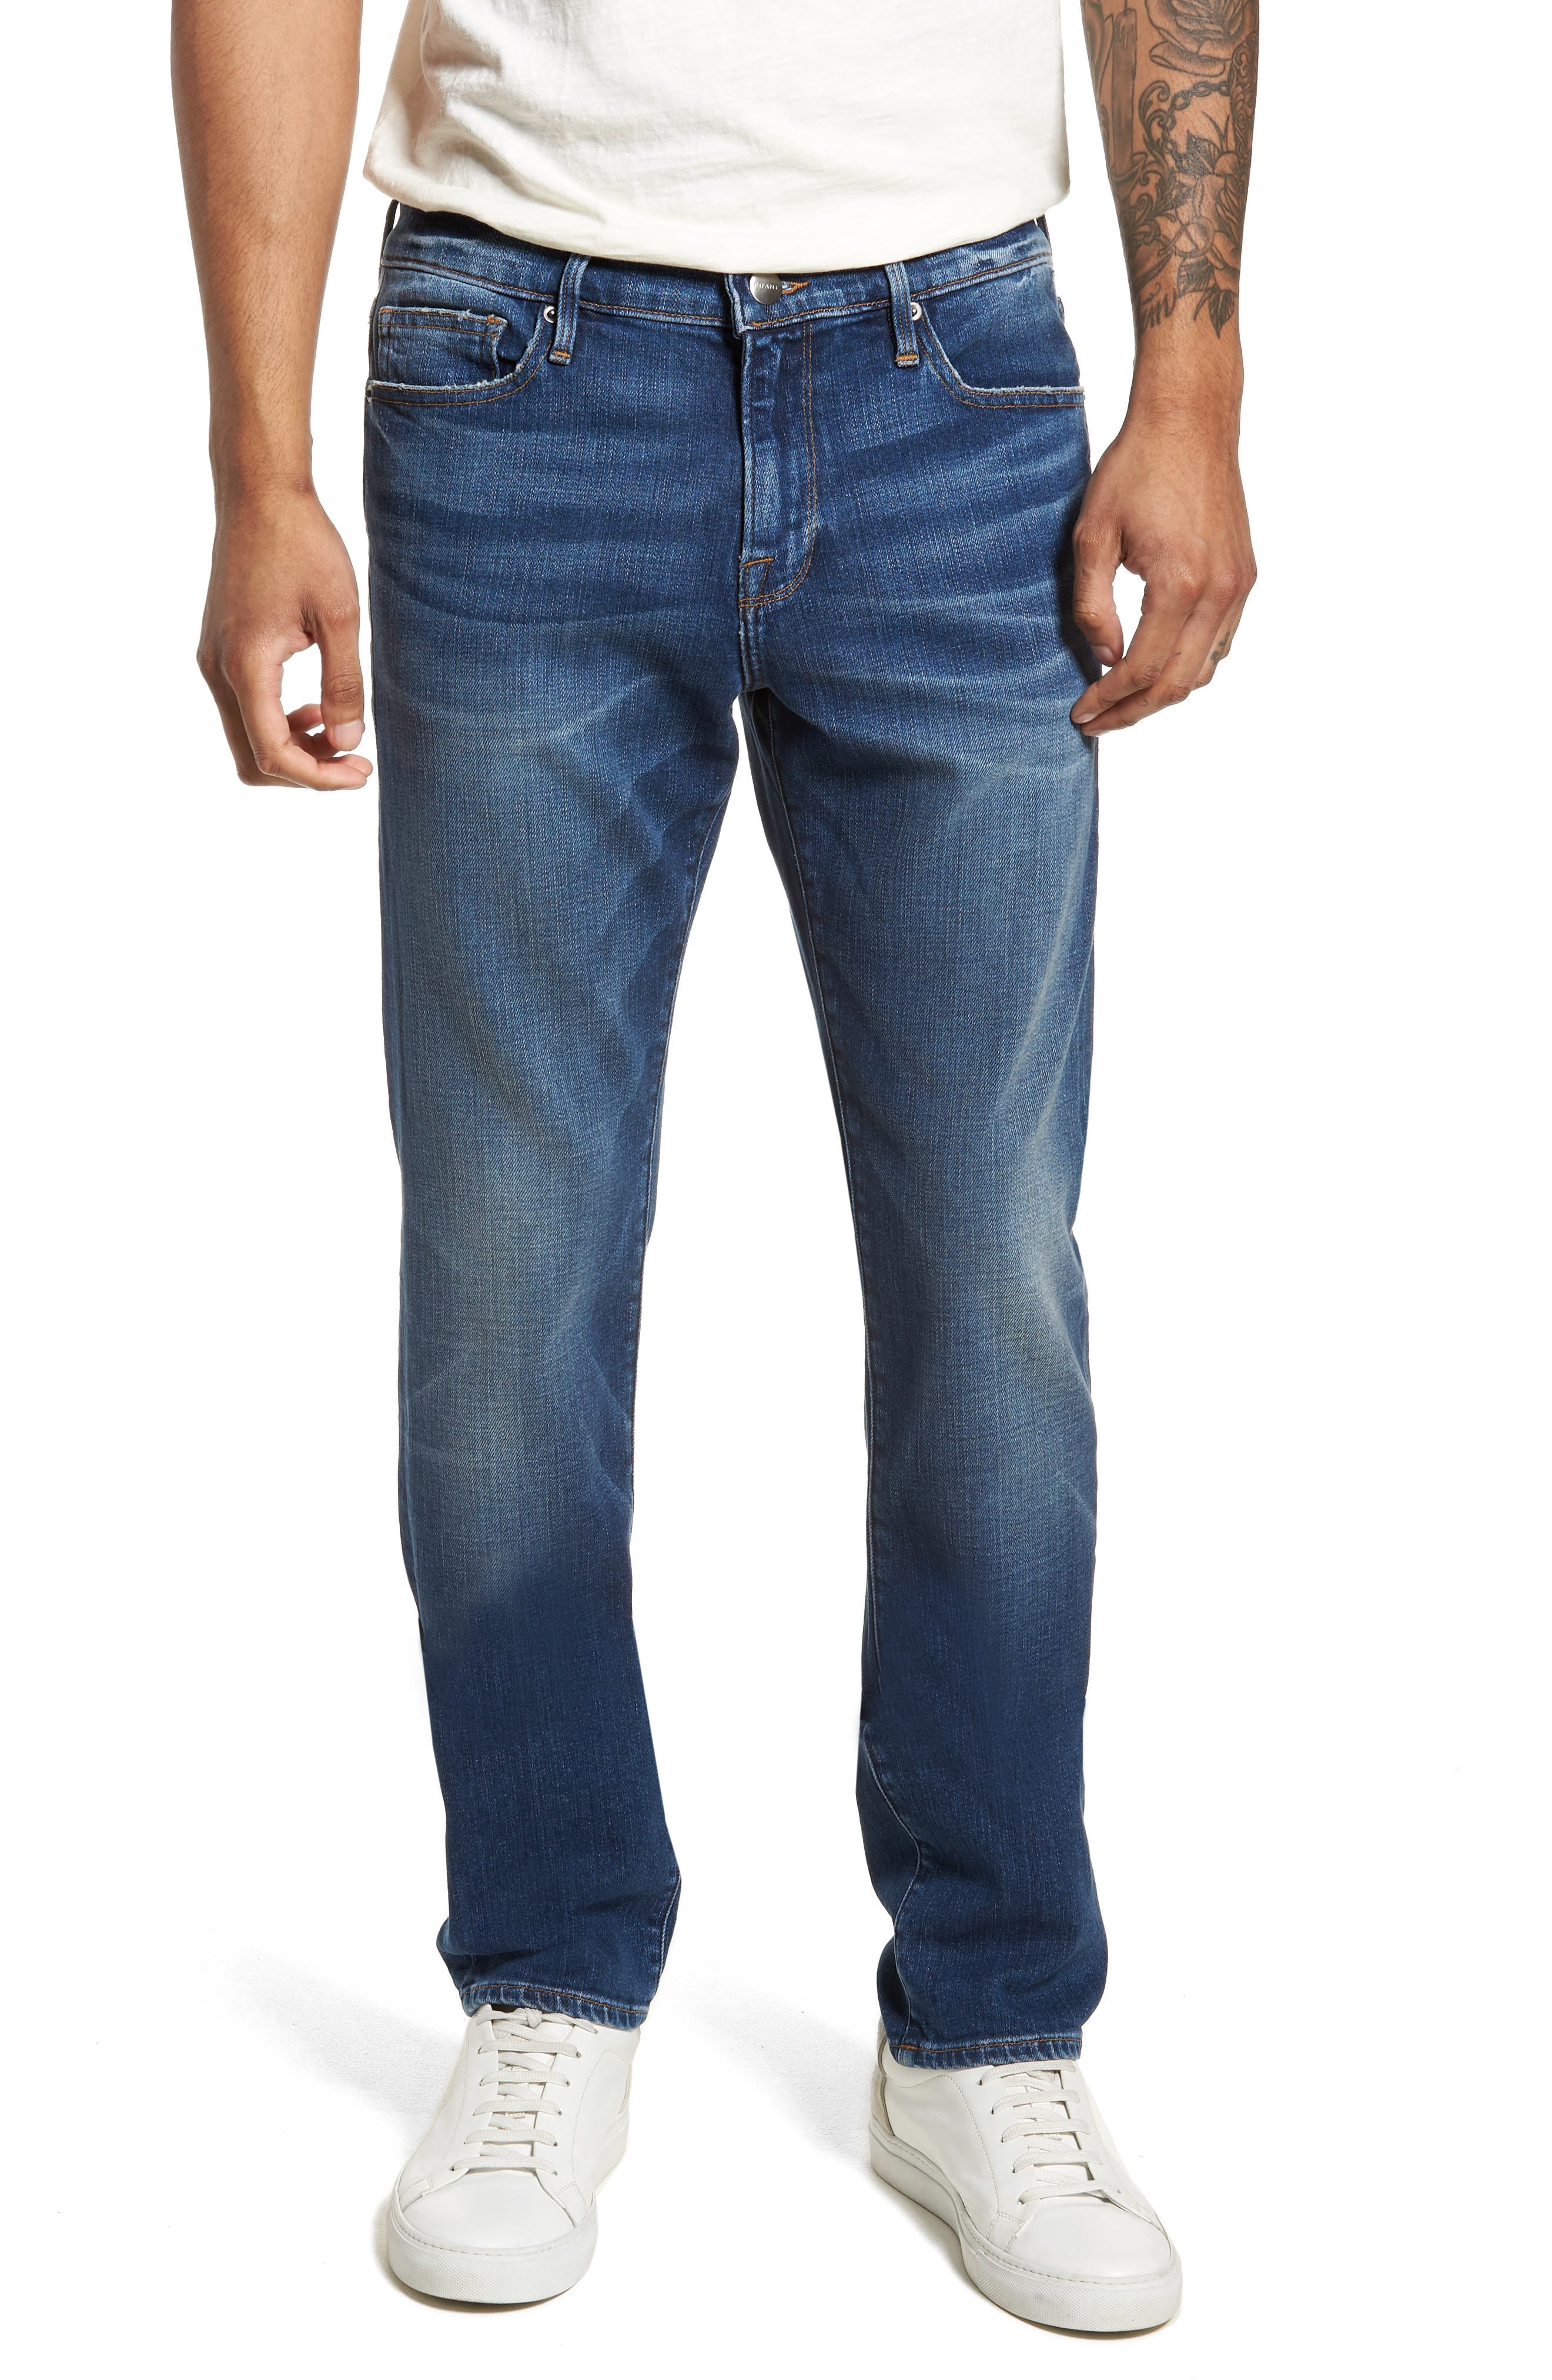 L'Homme Skinny Fit Jeans,                         Main,                         color, Francis